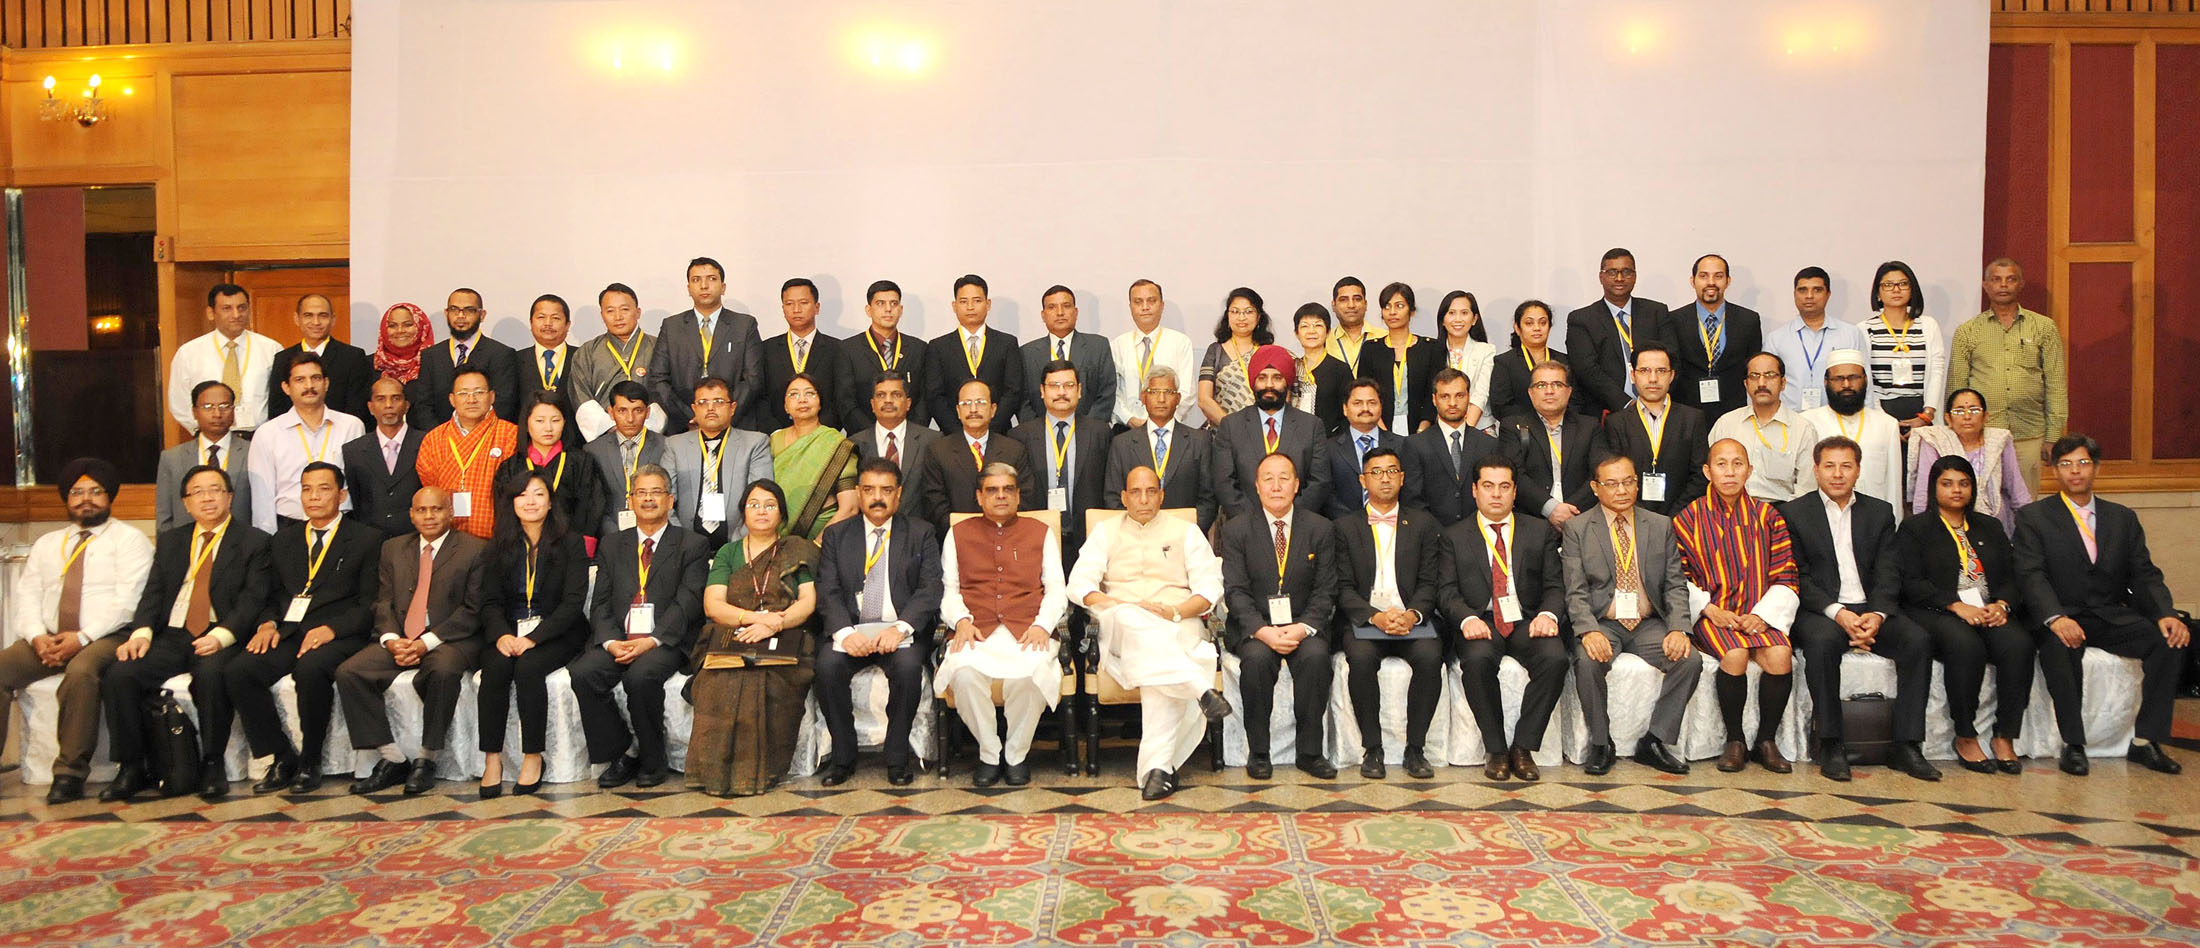 The Union Home Minister, Shri Rajnath Singh in group photograph, at a three-day workshop on Sub-Regional Drug 'Focal Point Meeting and DDR Expert Group Consultation, South Asia under Colombo Plan Drug Advisory Programme', in New Delhi on September 09, 2015.   The Minister of State for Home Affairs, Shri Haribhai Parthibhai Chaudhary and other dignitaries are also seen.